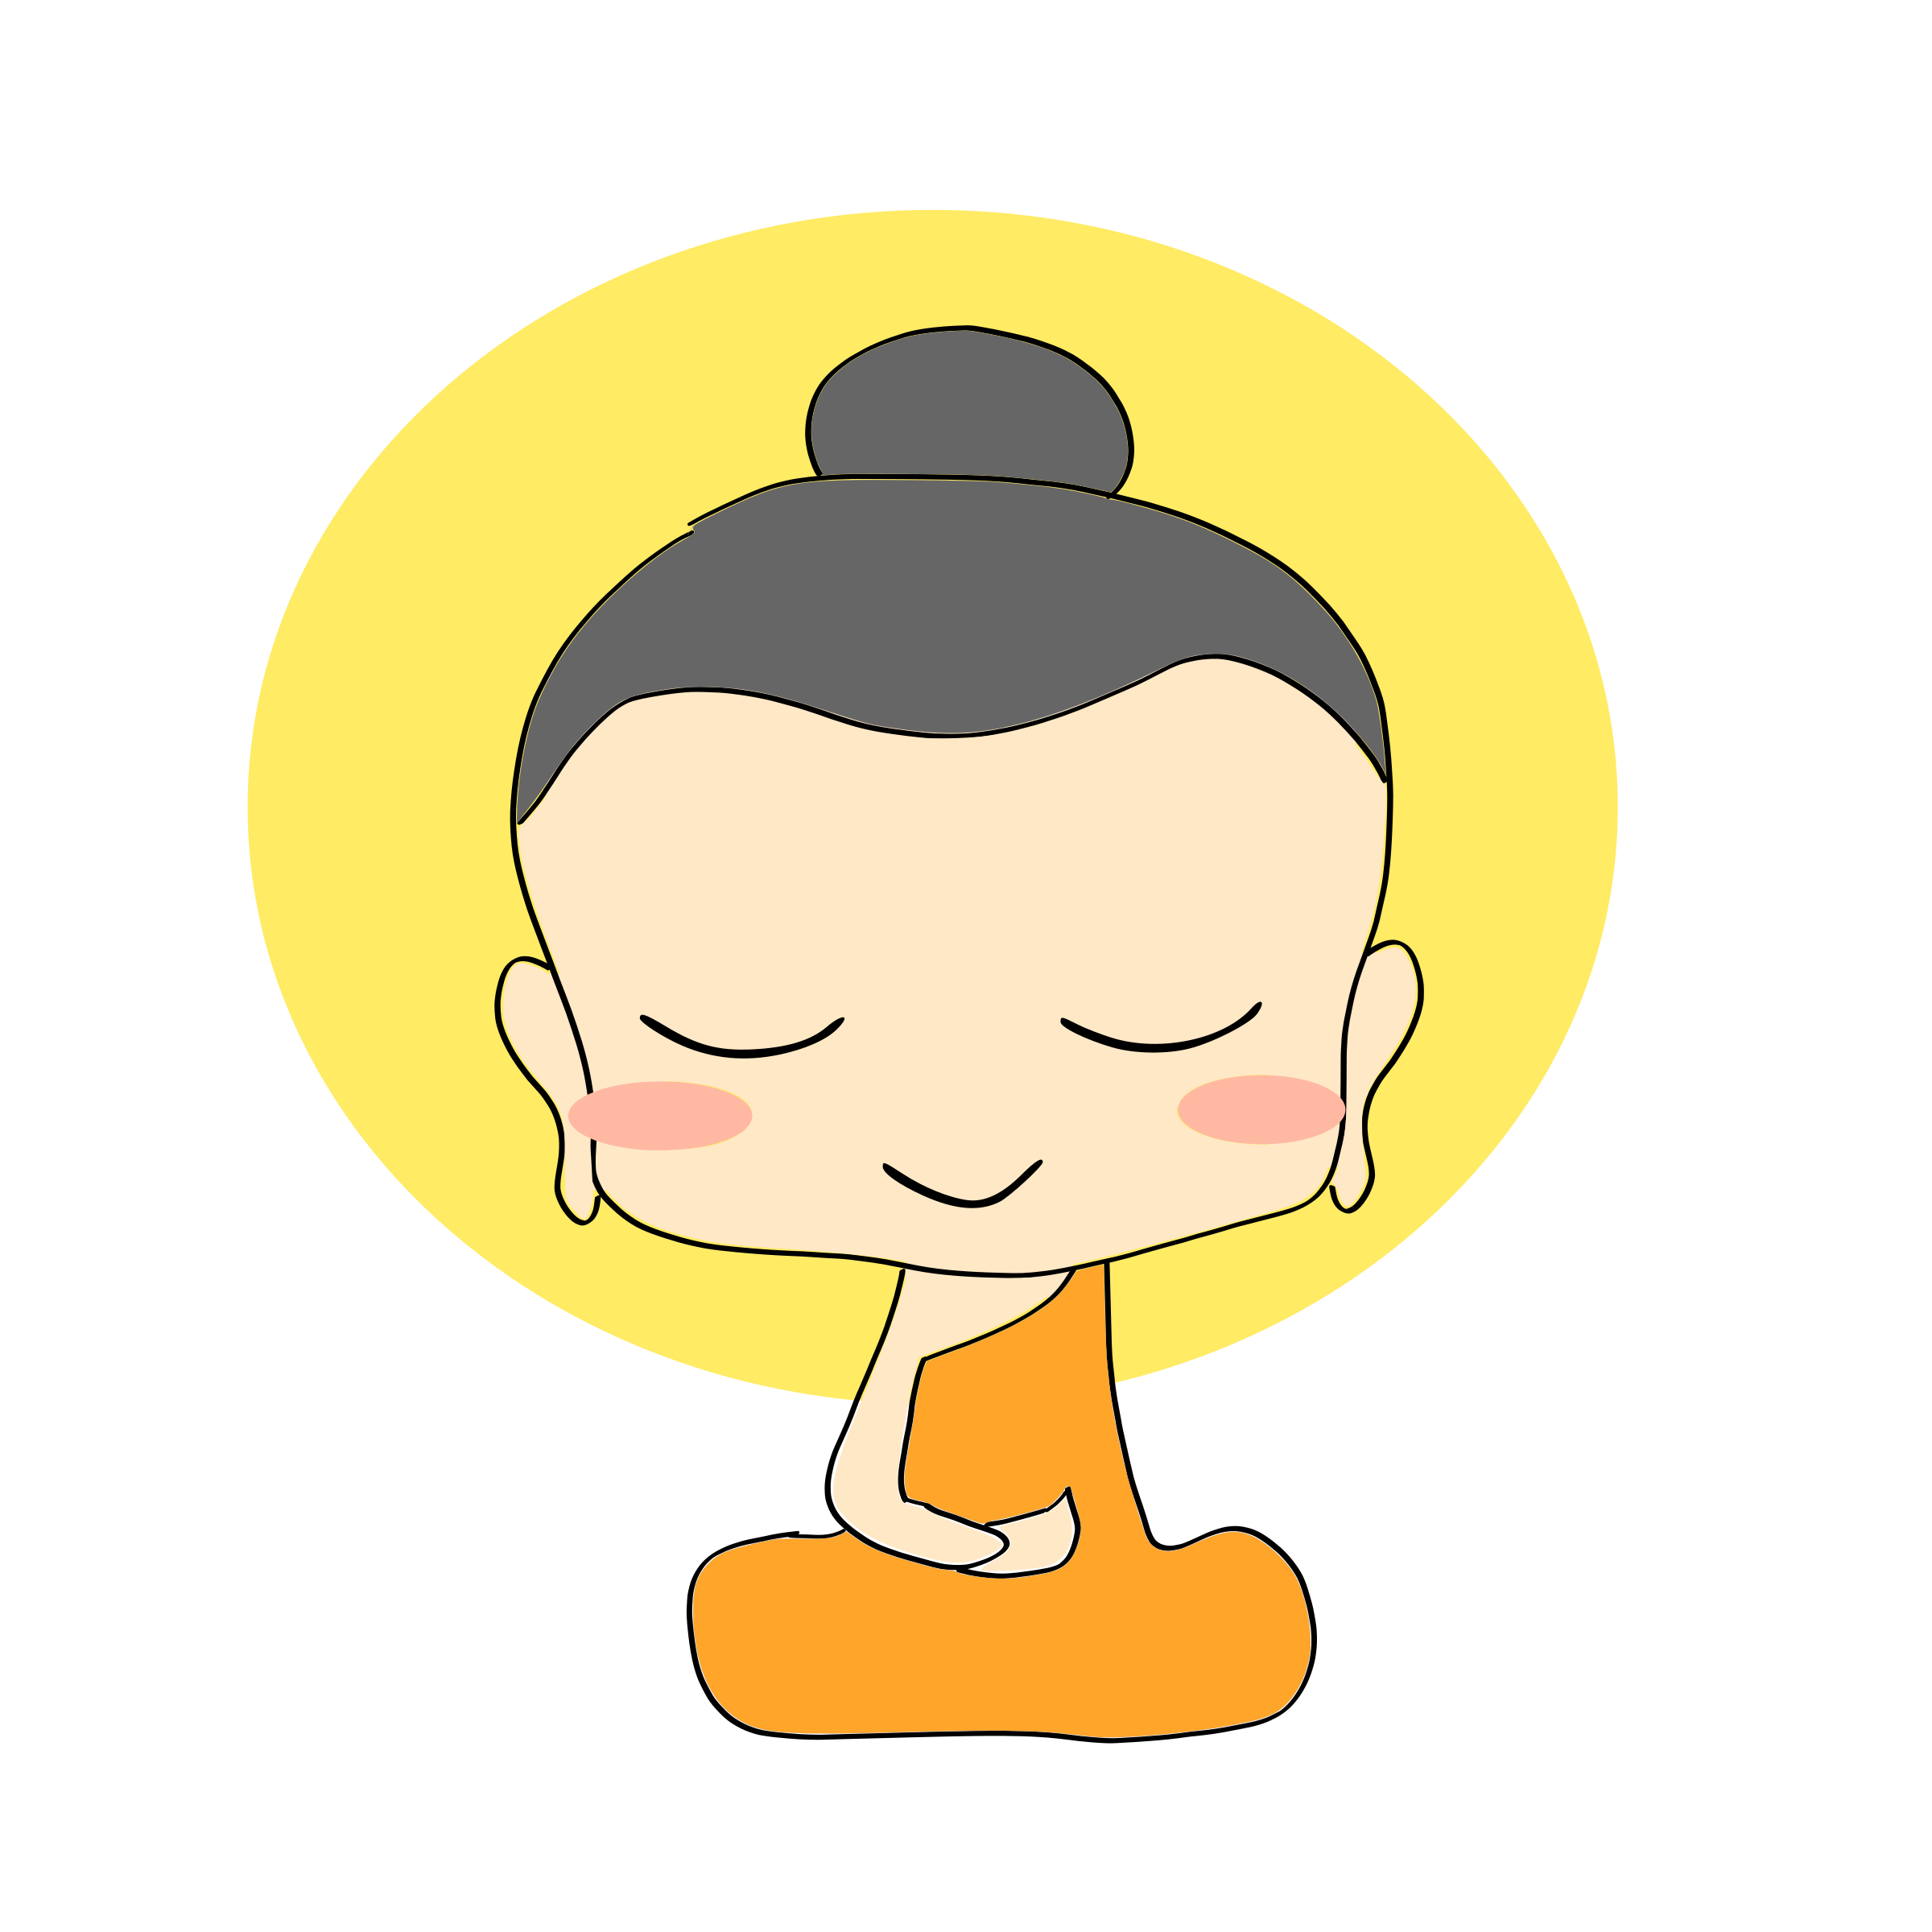 Buddhist drawing kid. Chibi buddha google search